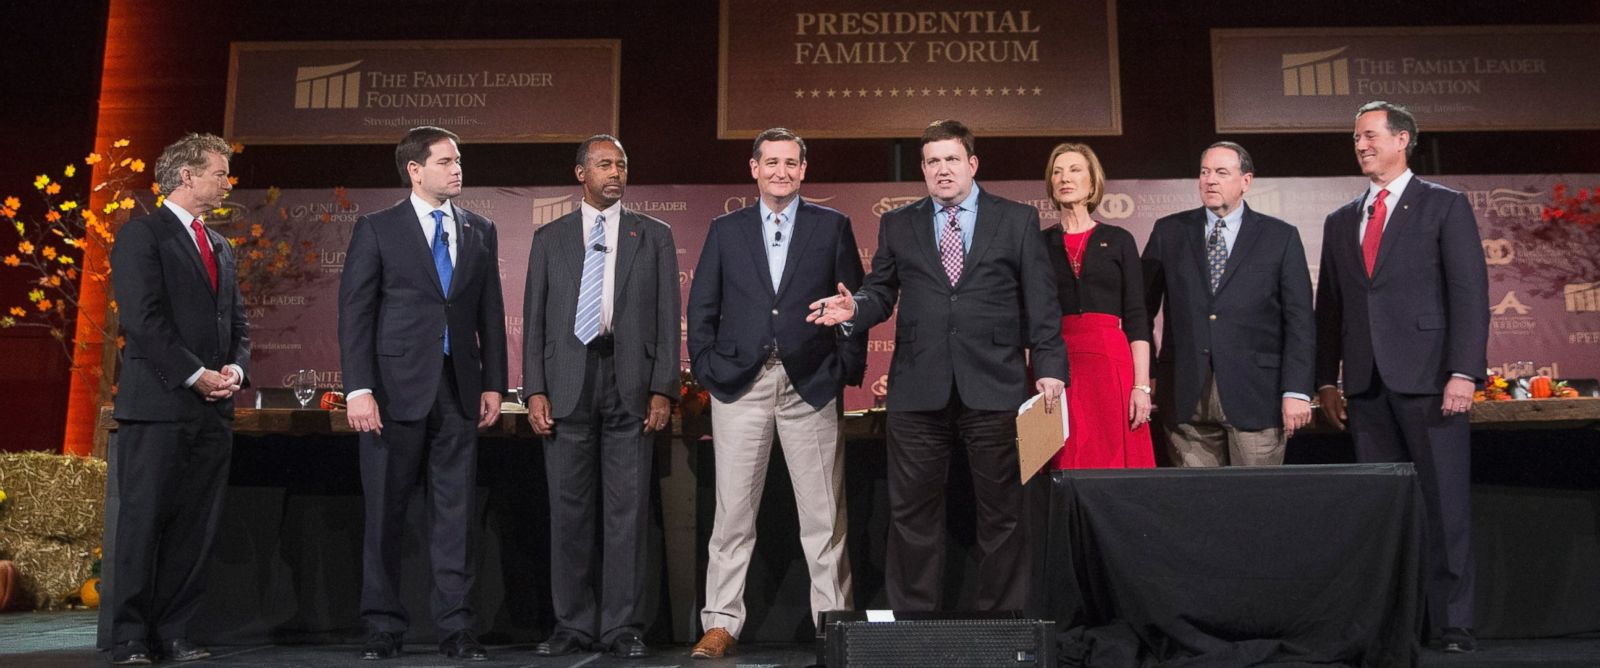 PHOTO: Moderator Frank Luntz introduces Republican presidential candidates at the Presidential Family forum, Nov. 20, 2015 in Des Moines, Iowa.